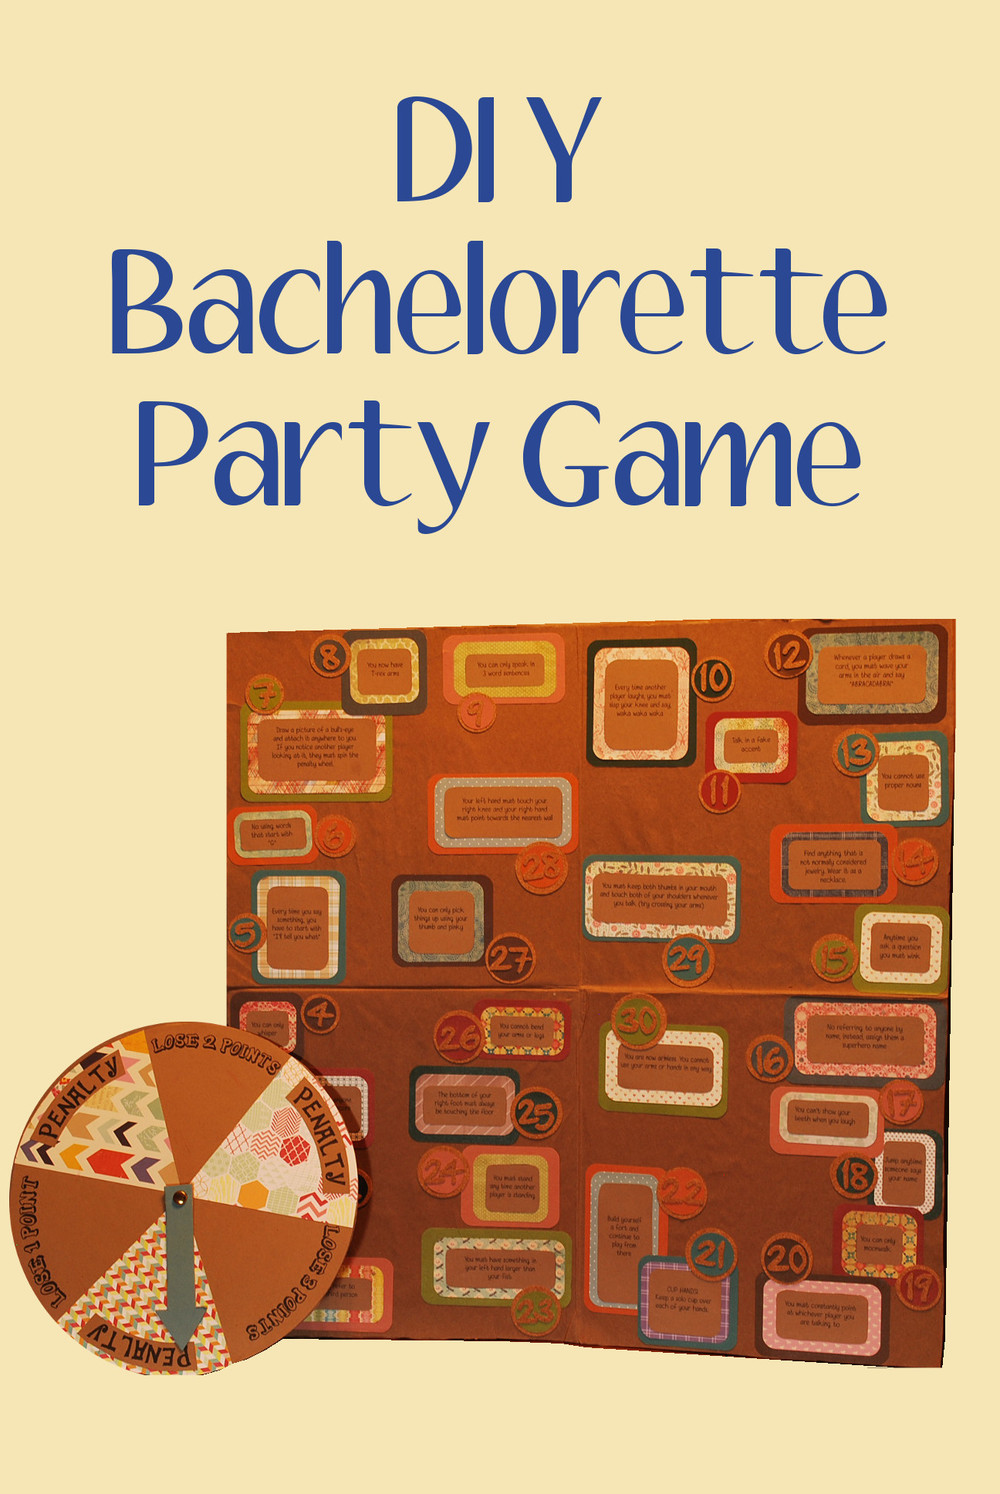 DIY bachelorette party game